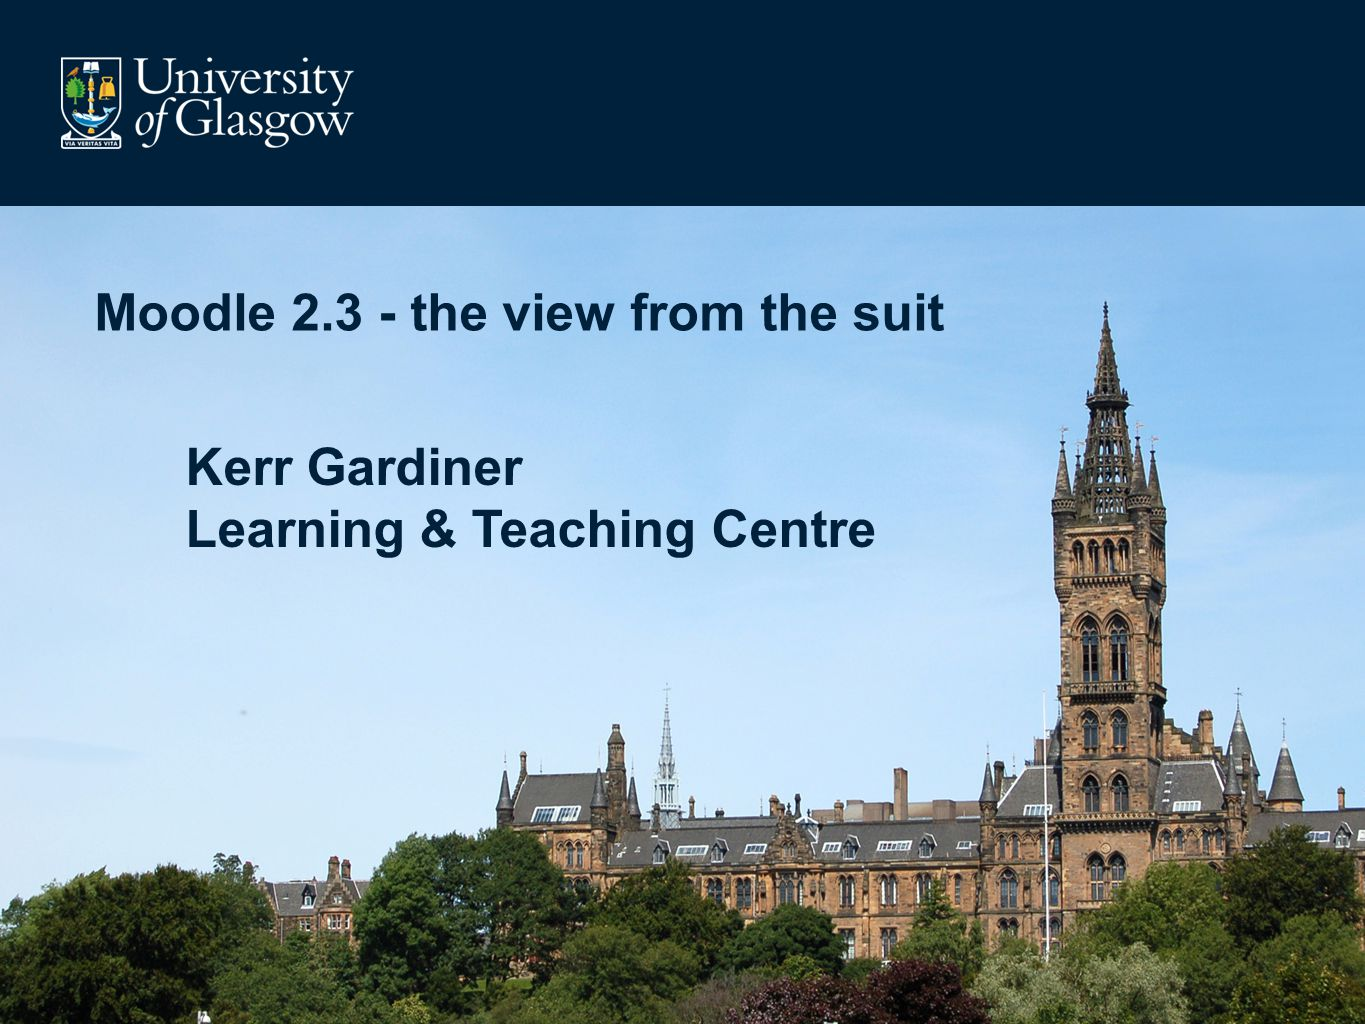 Moodle 2.3 - the view from the suit Kerr Gardiner Learning & Teaching Centre